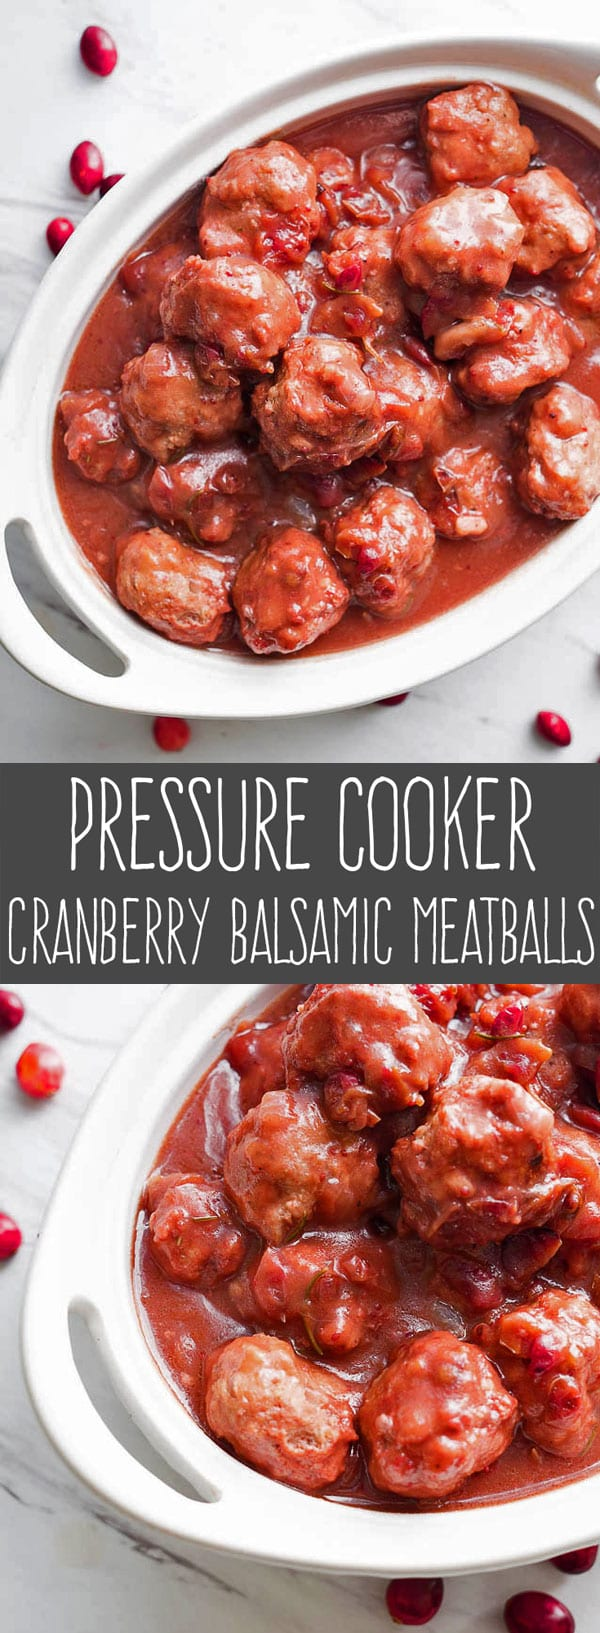 Cranberry Balsamic Meatballs are the perfect appetizer for holiday entertaining. Pop one into your mouth and taste an explosion of cranberry, rosemary, and balsamic vinegar packed into one savory bite. Making balsamic meatballs in an Instapot is quick and easy with this pressure cooker meatballs recipe. #pressurecooker #instantpot #appetizer via @PressureCook2da